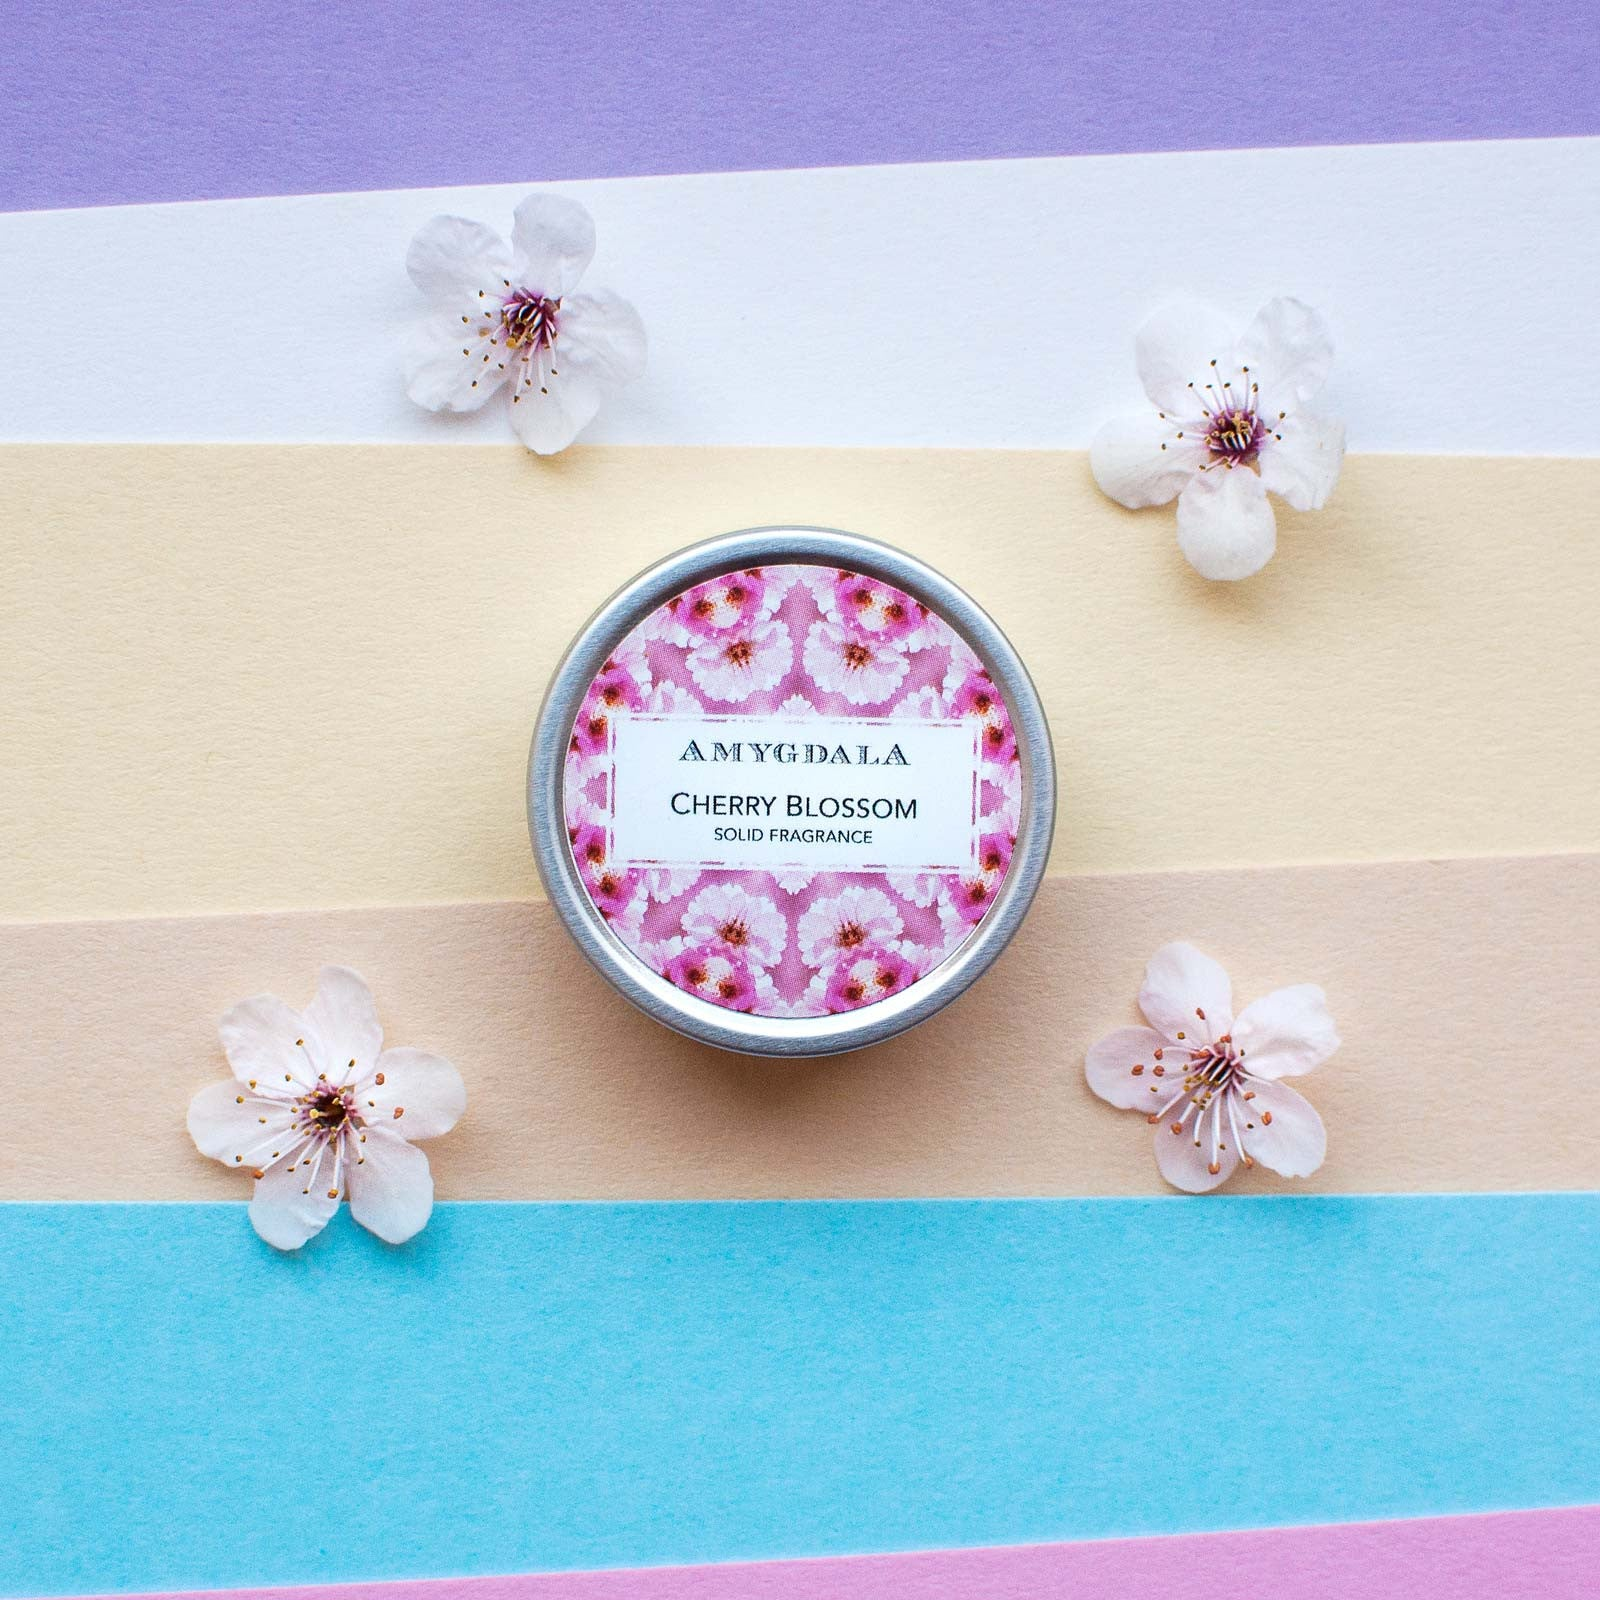 cherry blossom perfume with flowers